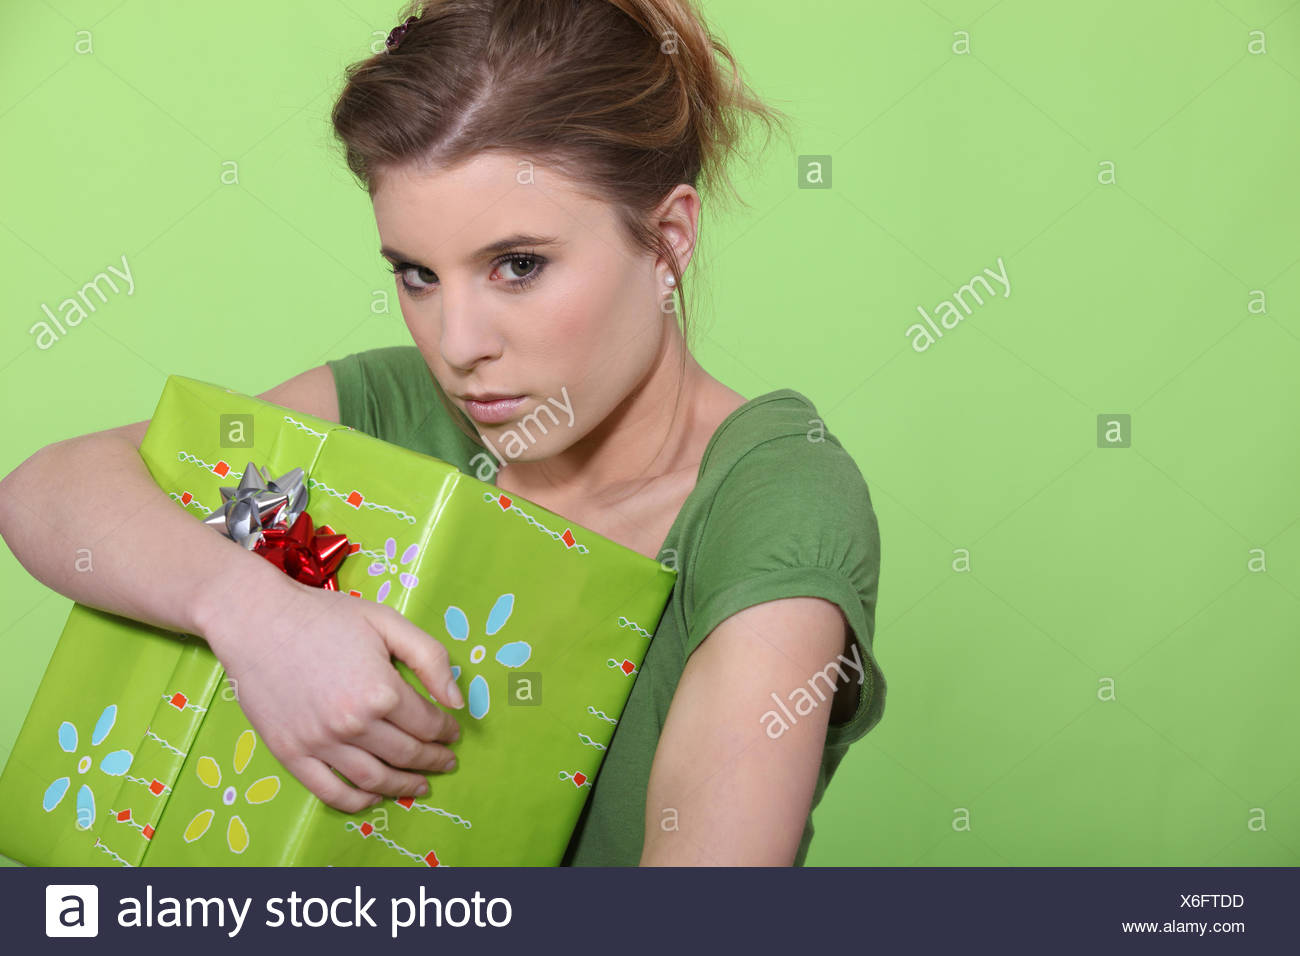 Greedy woman hugging her present all to herself - Stock Image